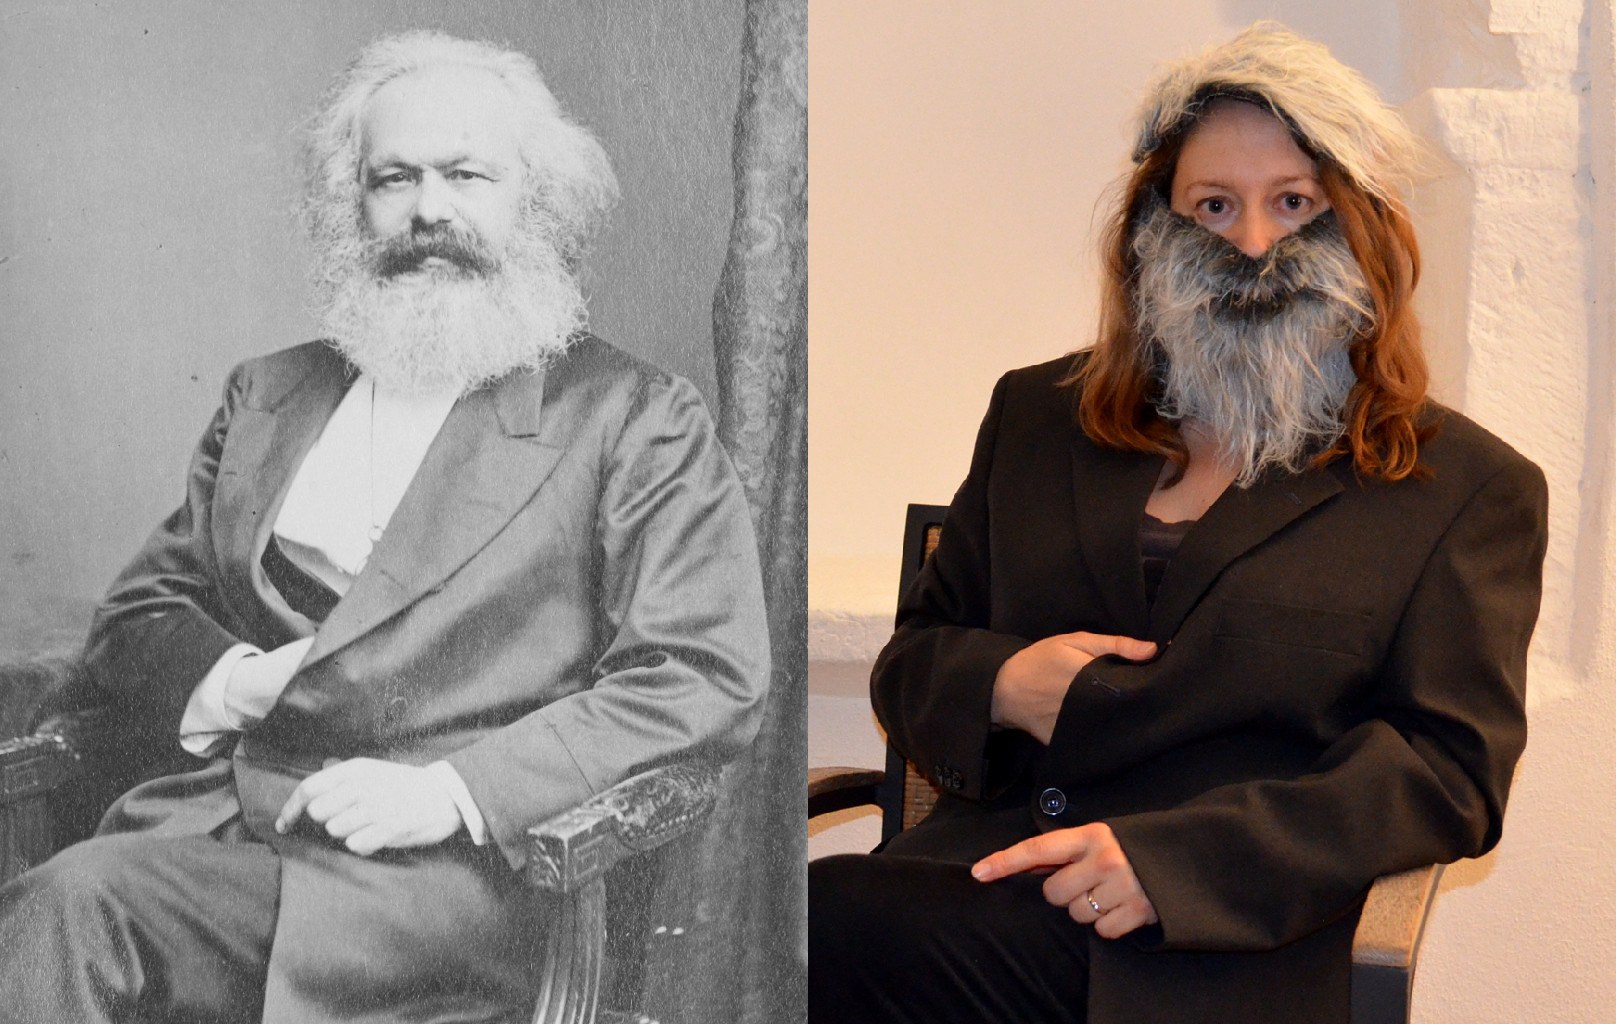 an interview with karl marx Unlike most editing & proofreading services, we edit for everything: grammar, spelling, punctuation, idea flow, sentence structure, & more get started now.